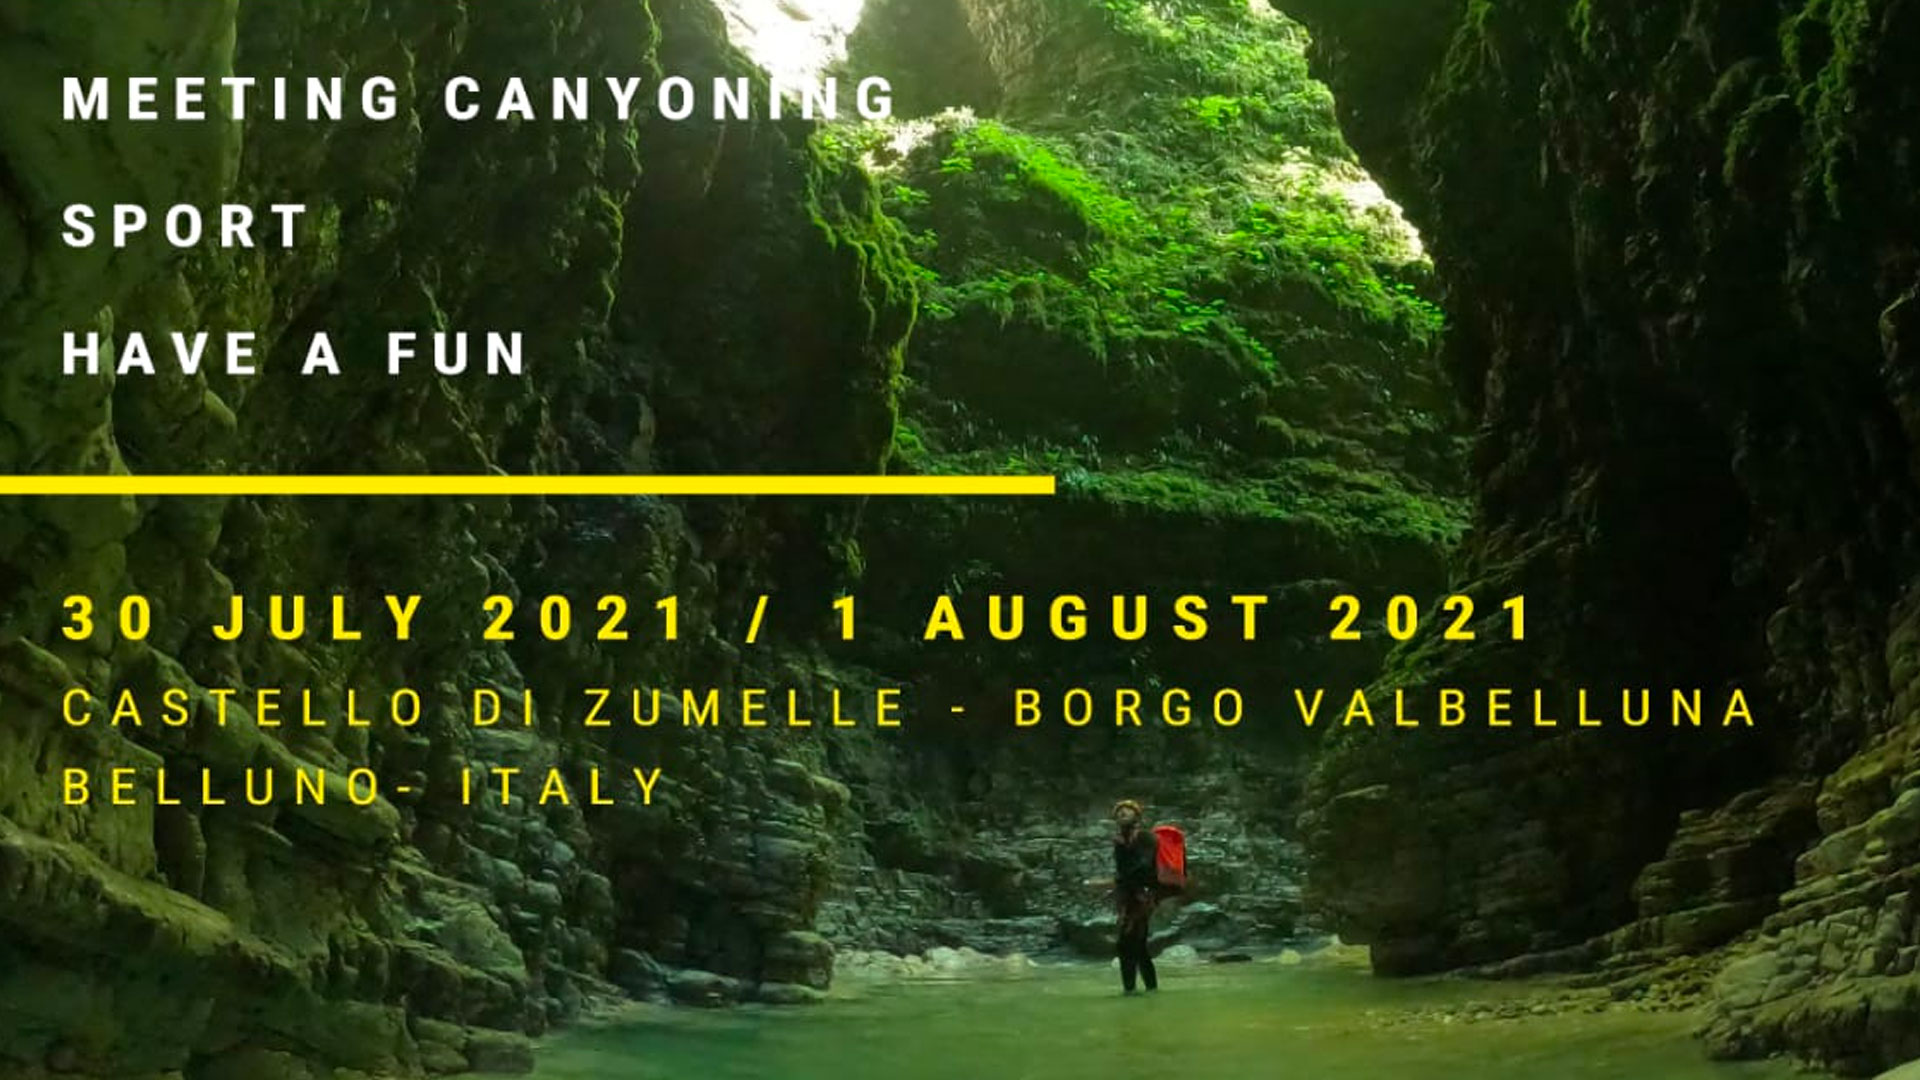 Details for the canyoning meeting in Dolomiti